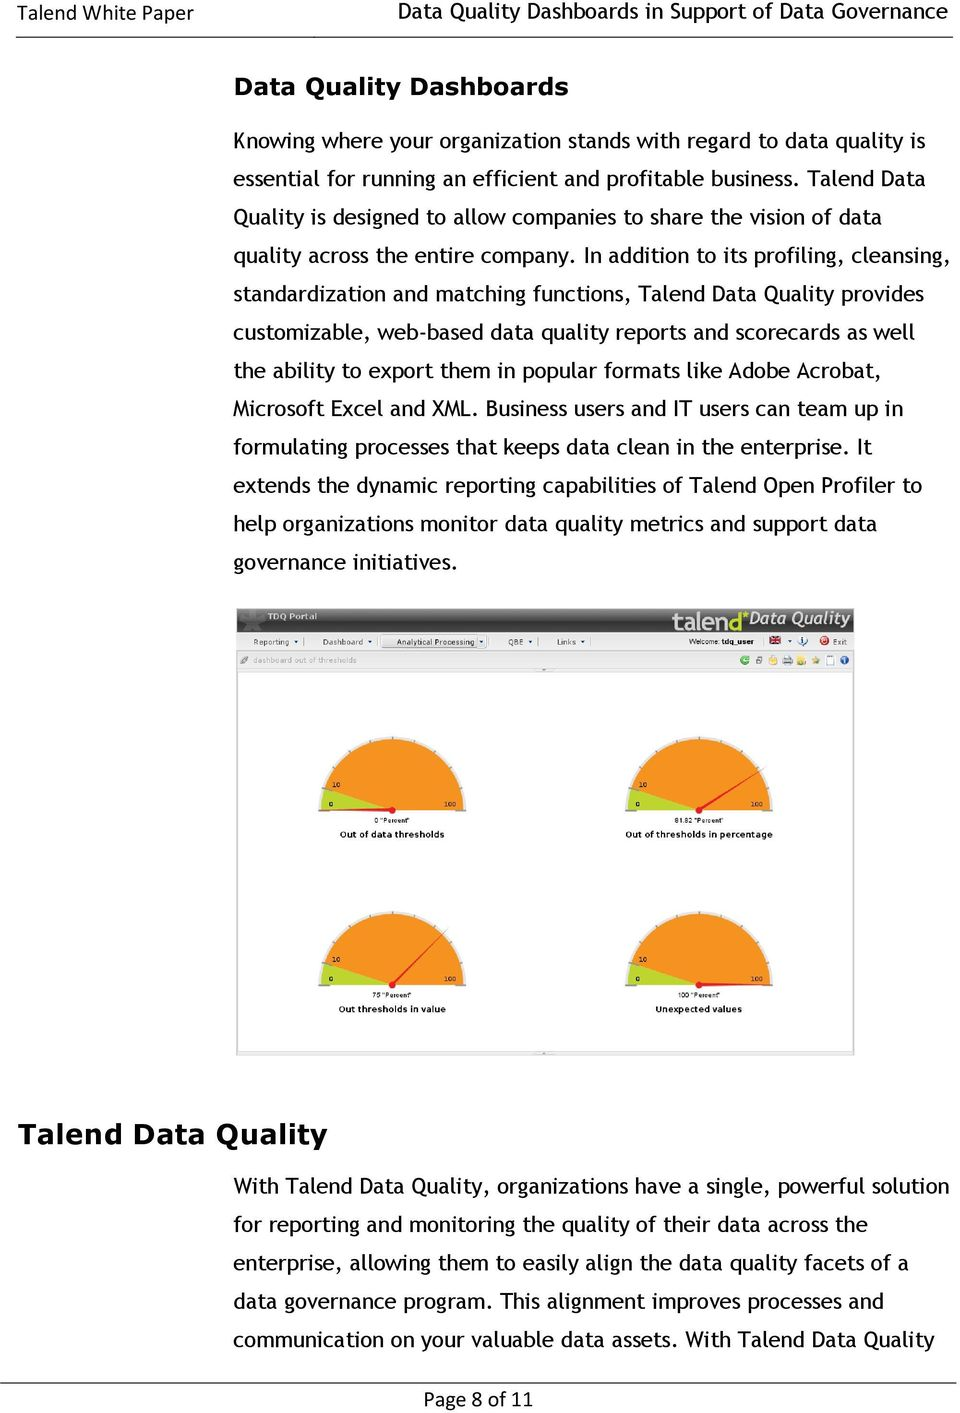 In addition to its profiling, cleansing, standardization and matching functions, Talend Data Quality provides customizable, web-based data quality reports and scorecards as well the ability to export